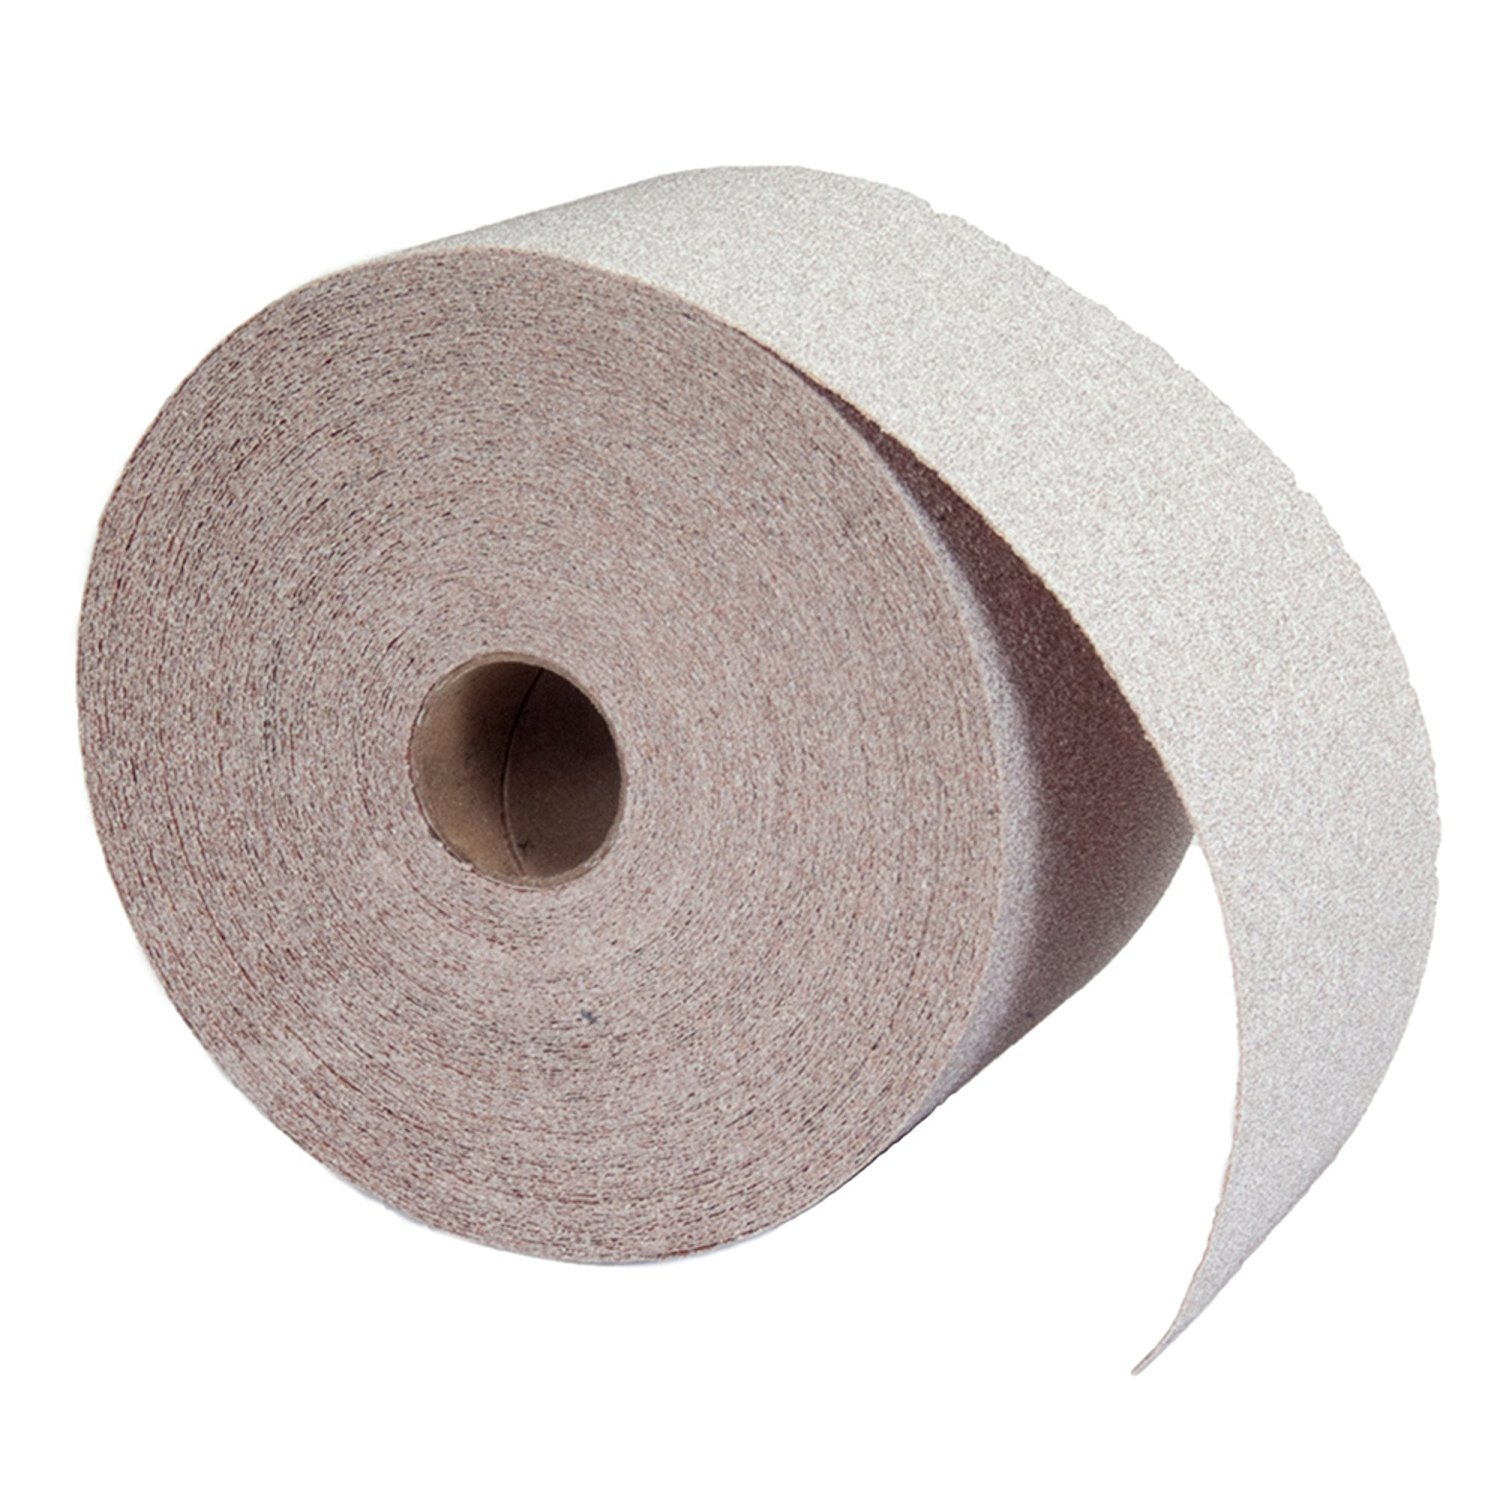 25mm x 25m P120 R222 Norton Best Quality Abrasive Roll with tear off dispenser.